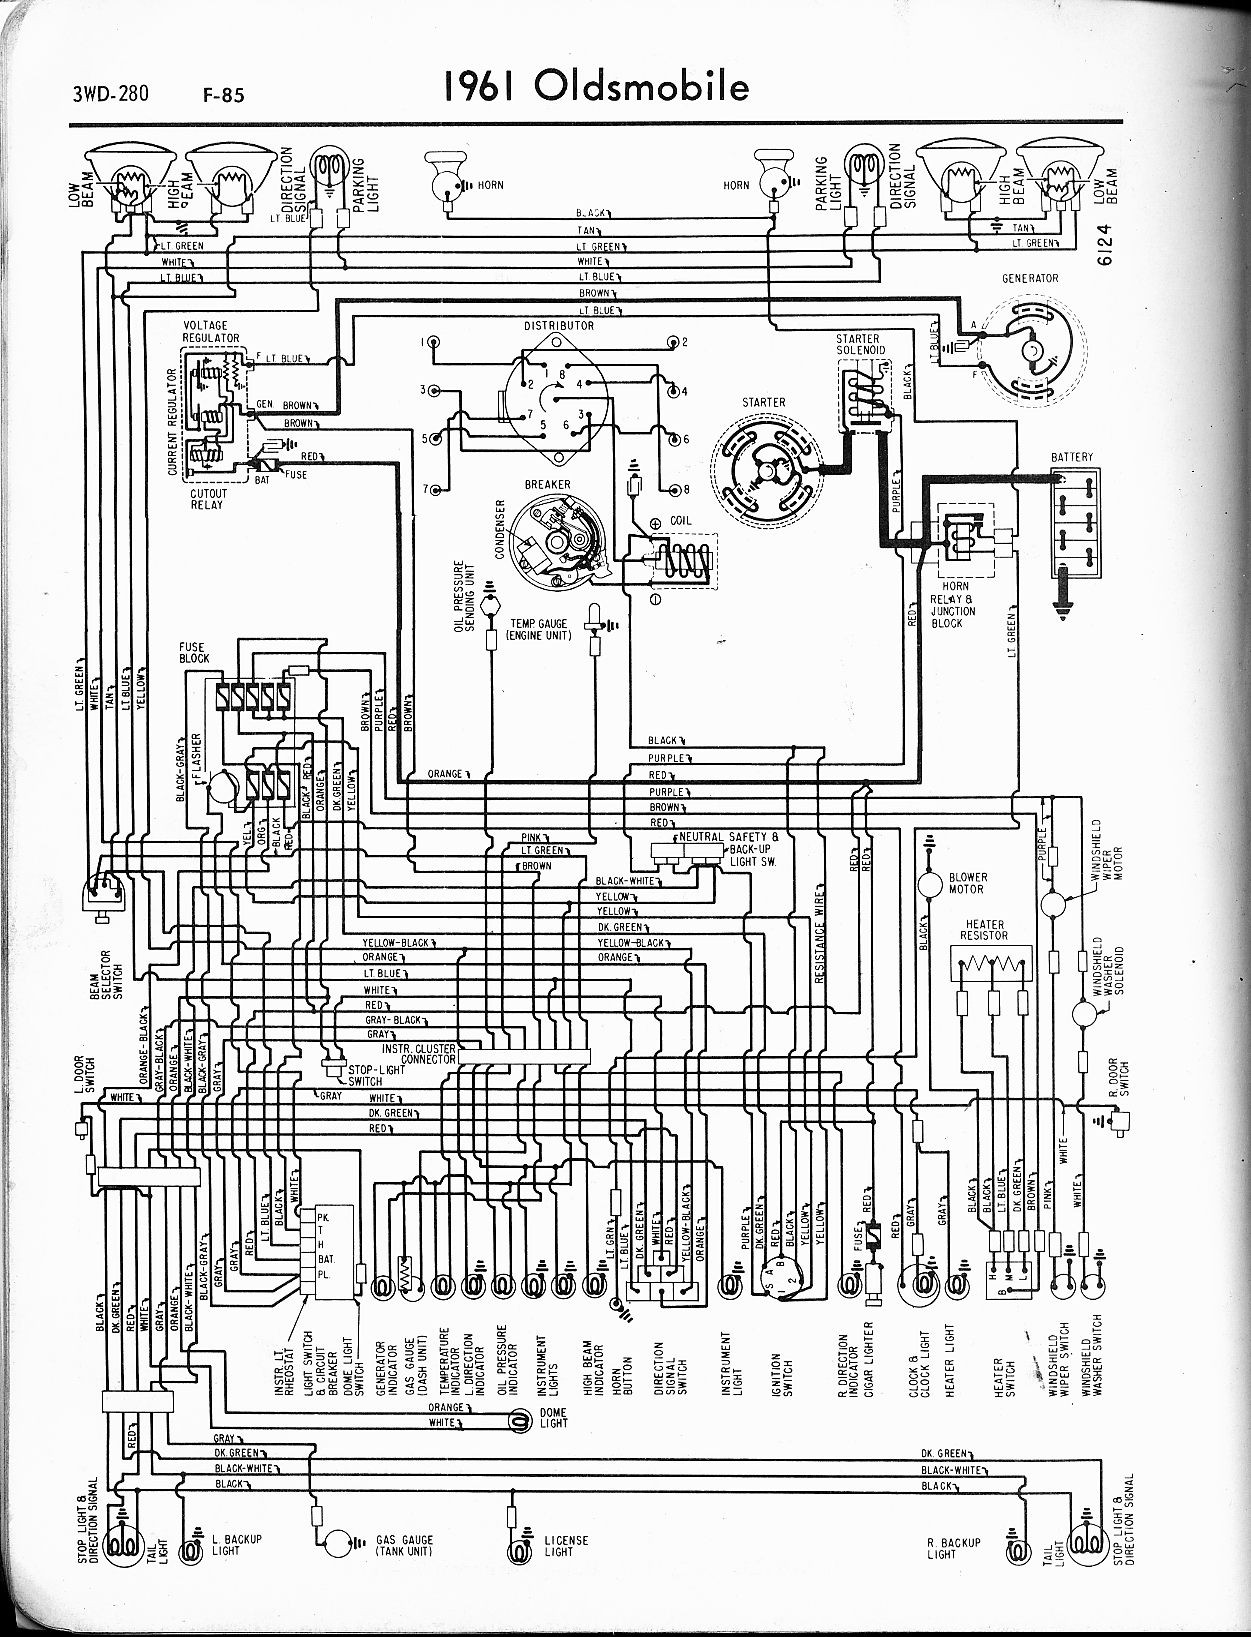 ... 1997 Pontiac Grand Am Engine Diagram 1984 Oldsmobile Cutl Wiring Diagram  1972 Oldsmobile Cutl Wiring Of